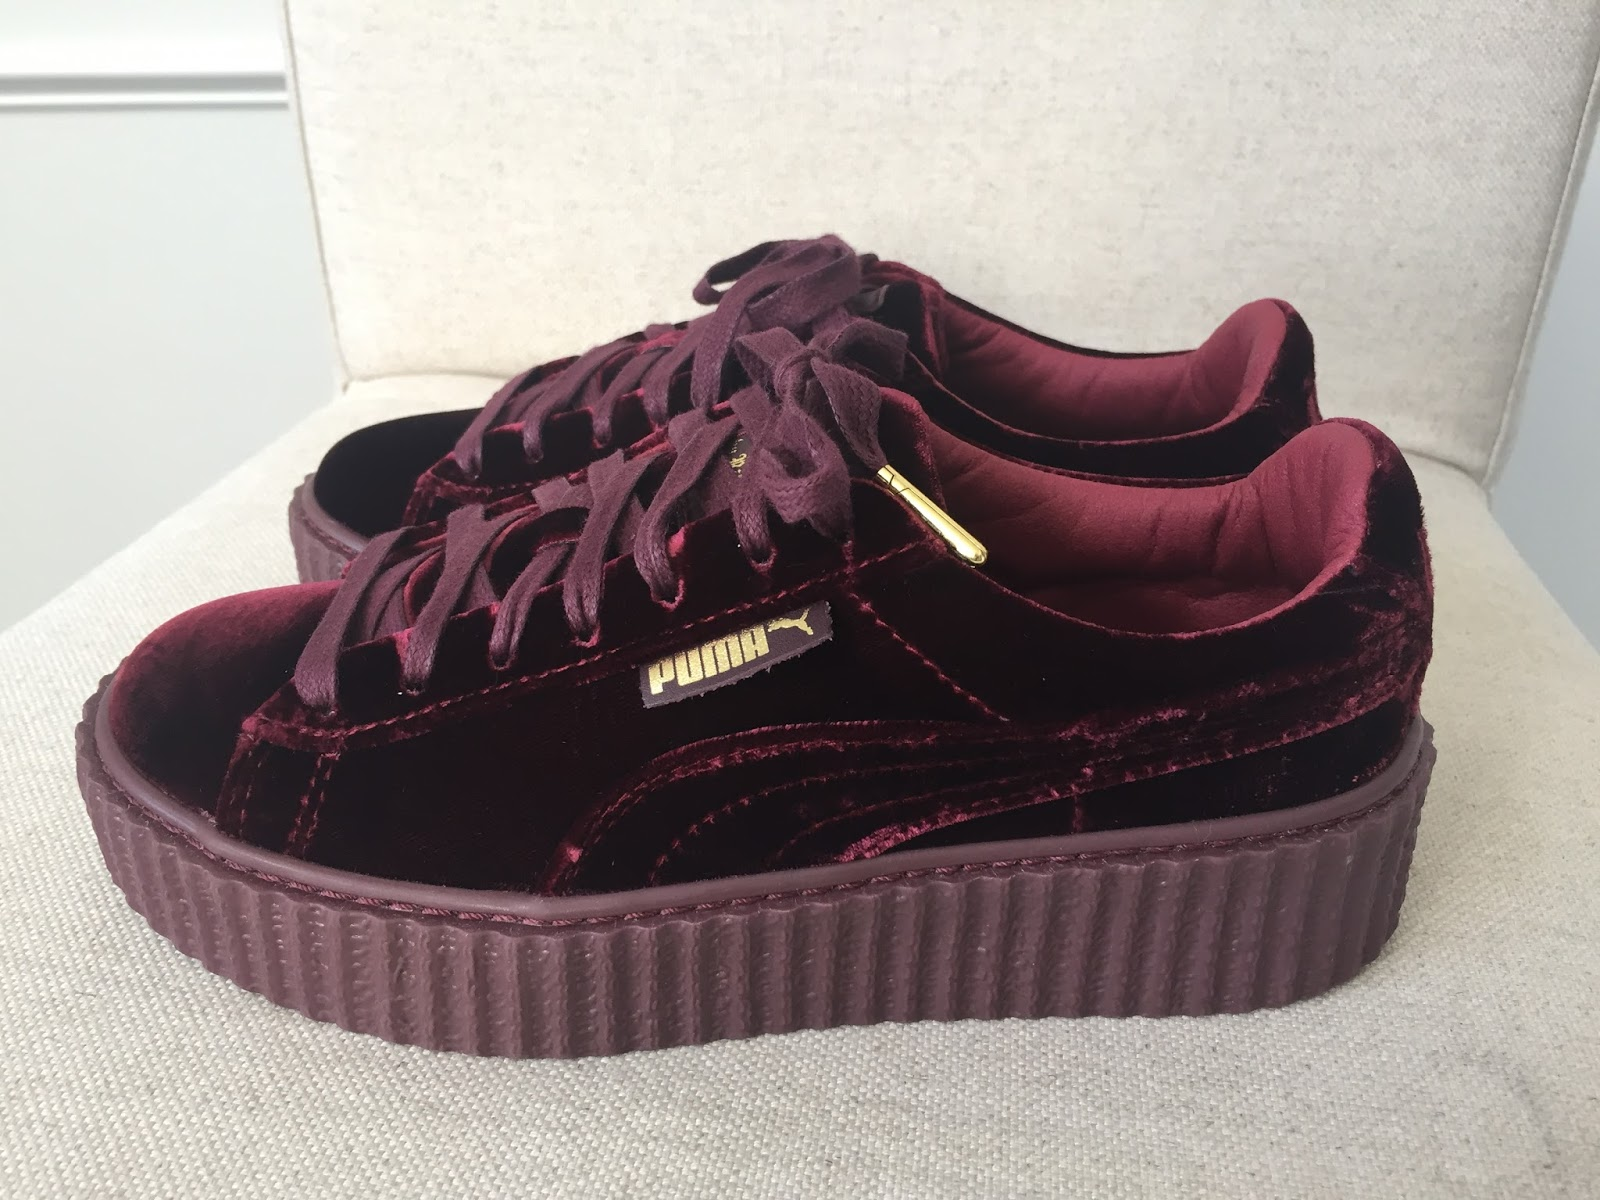 ea0a61b5808 These velvet creepers by Puma are amazing. They re super soft and  comfortable